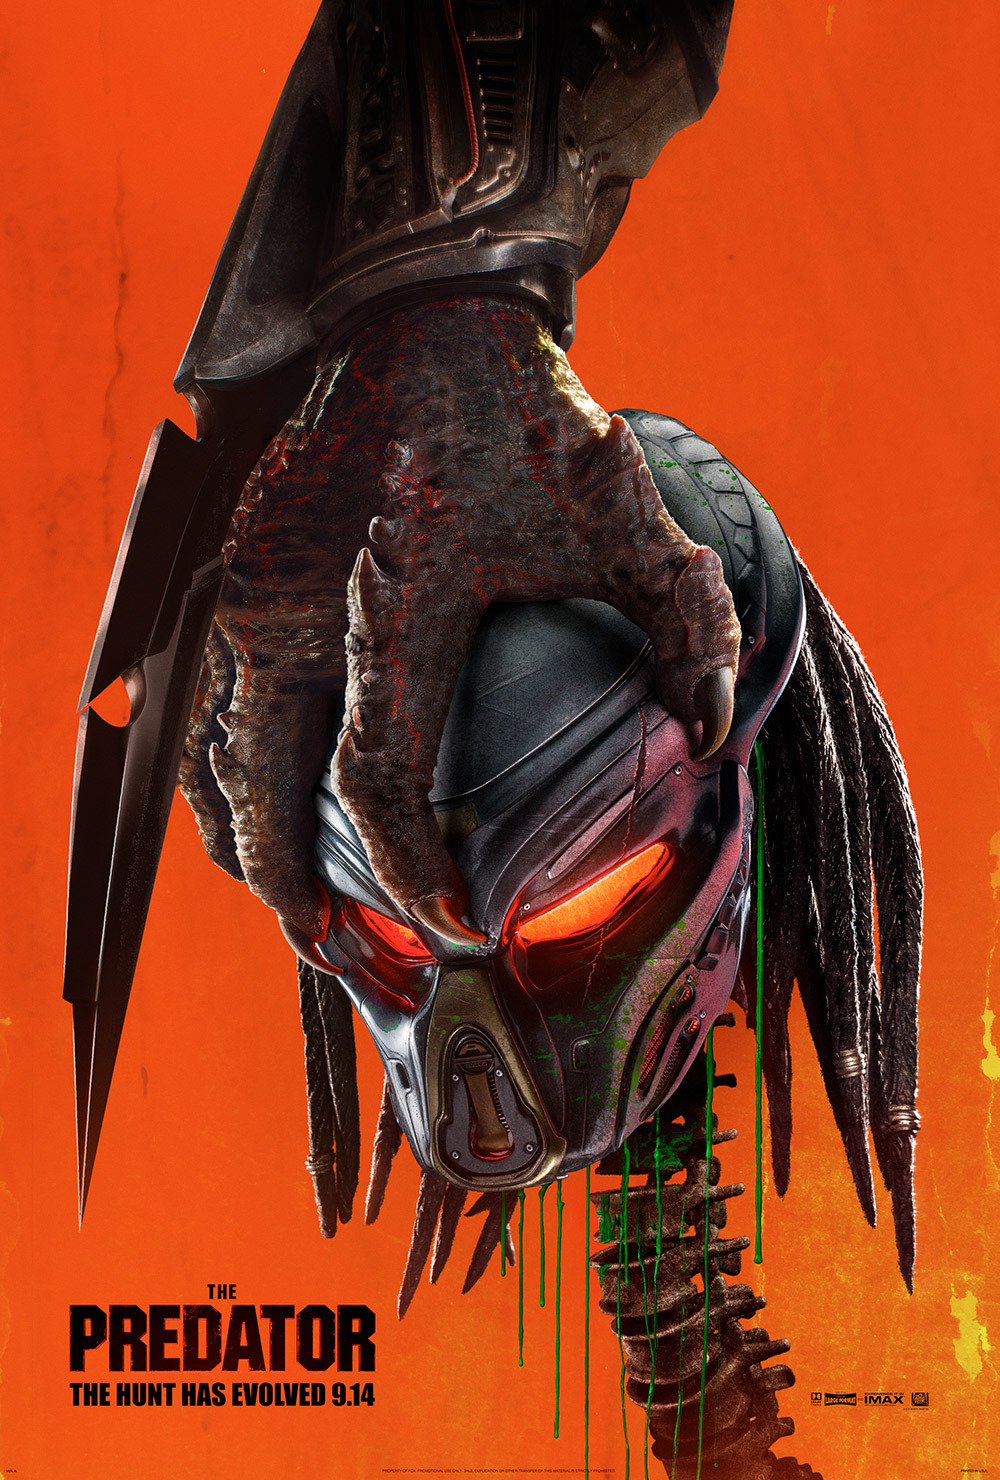 The Predator 2018 HDTS 720p 1GB [Hindi Clean – English] MKV